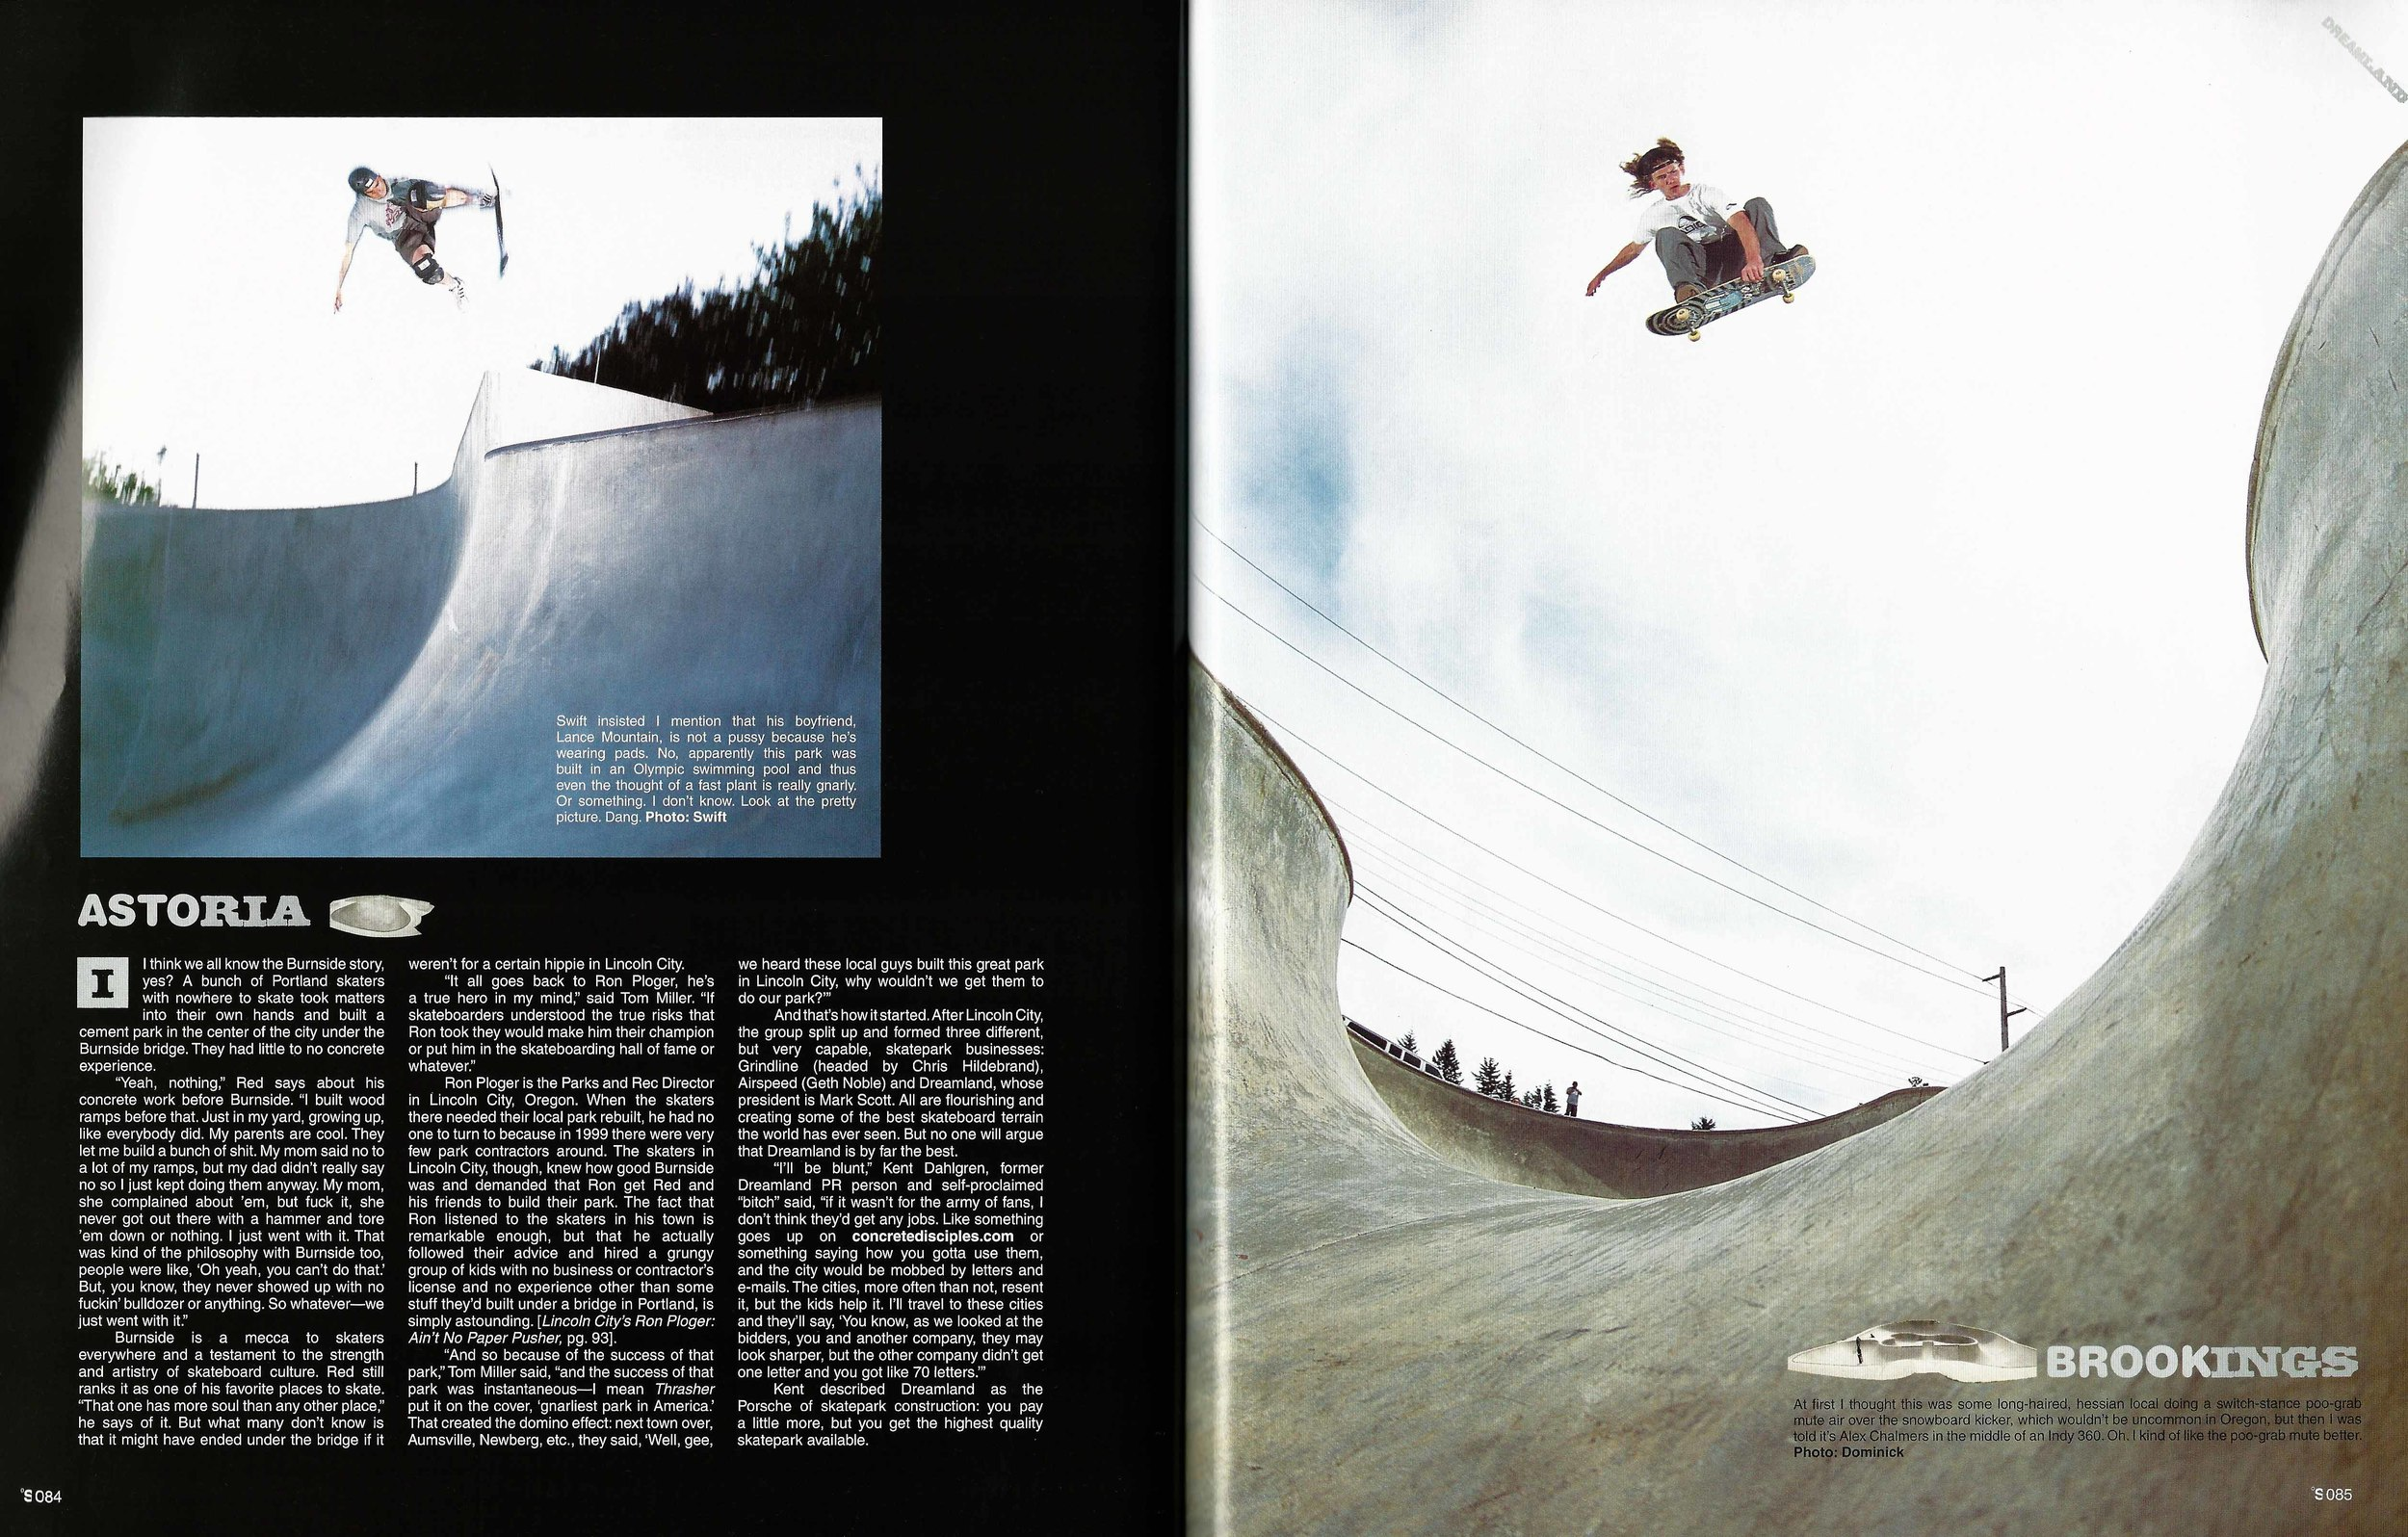 Lance Mountain and Alex Chalmers, Astoria, OR and Brookings, OR. The Skateboard Mag. Photo: Swift (left) and Dominick (right)